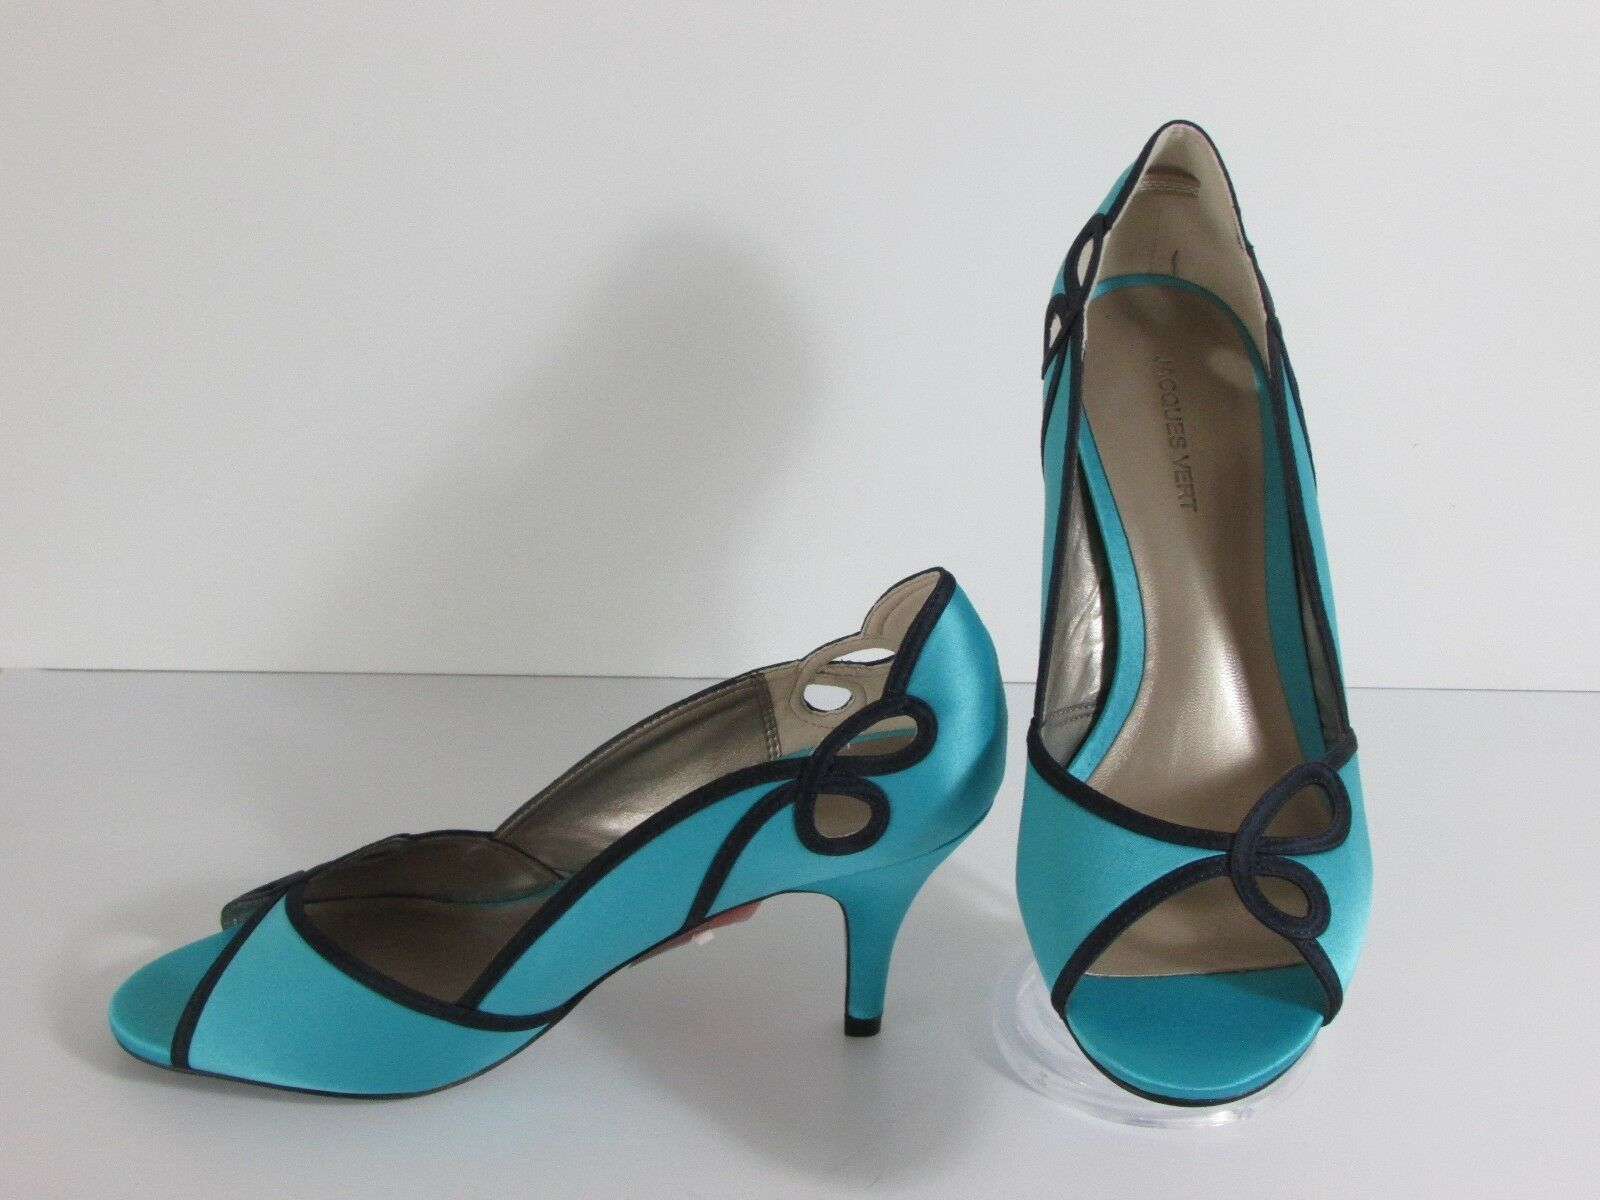 New Jacques green Turquoise Scallop Peep-Toe Court shoes 7 40            R2